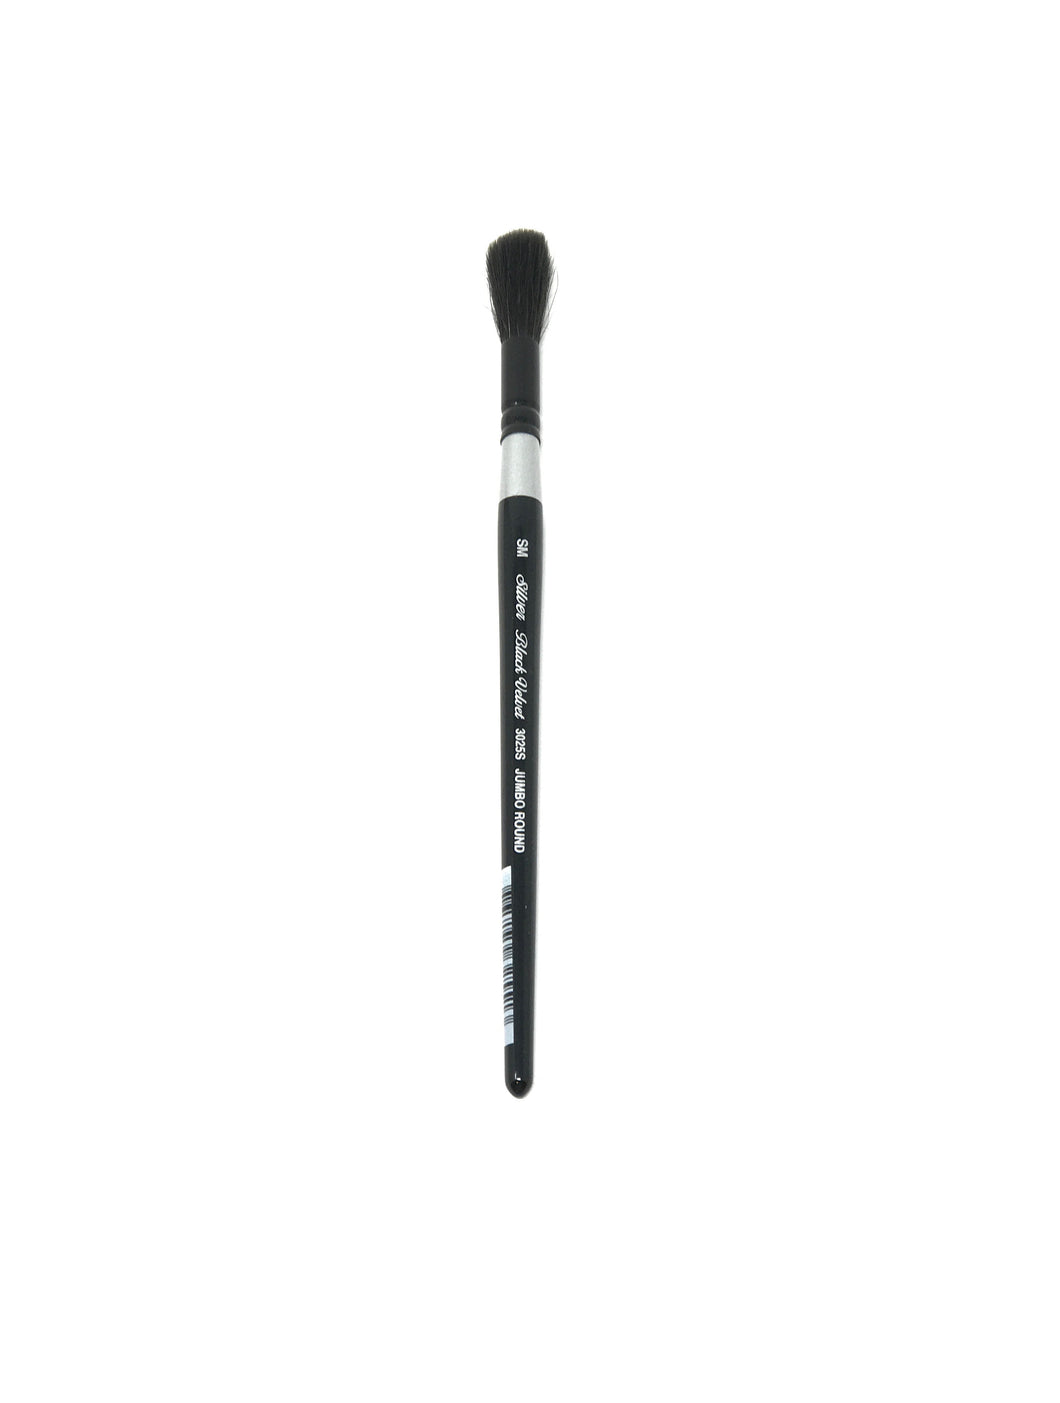 Black Velvet Size S Jumbo Round - Watercolor Brushes S3025S